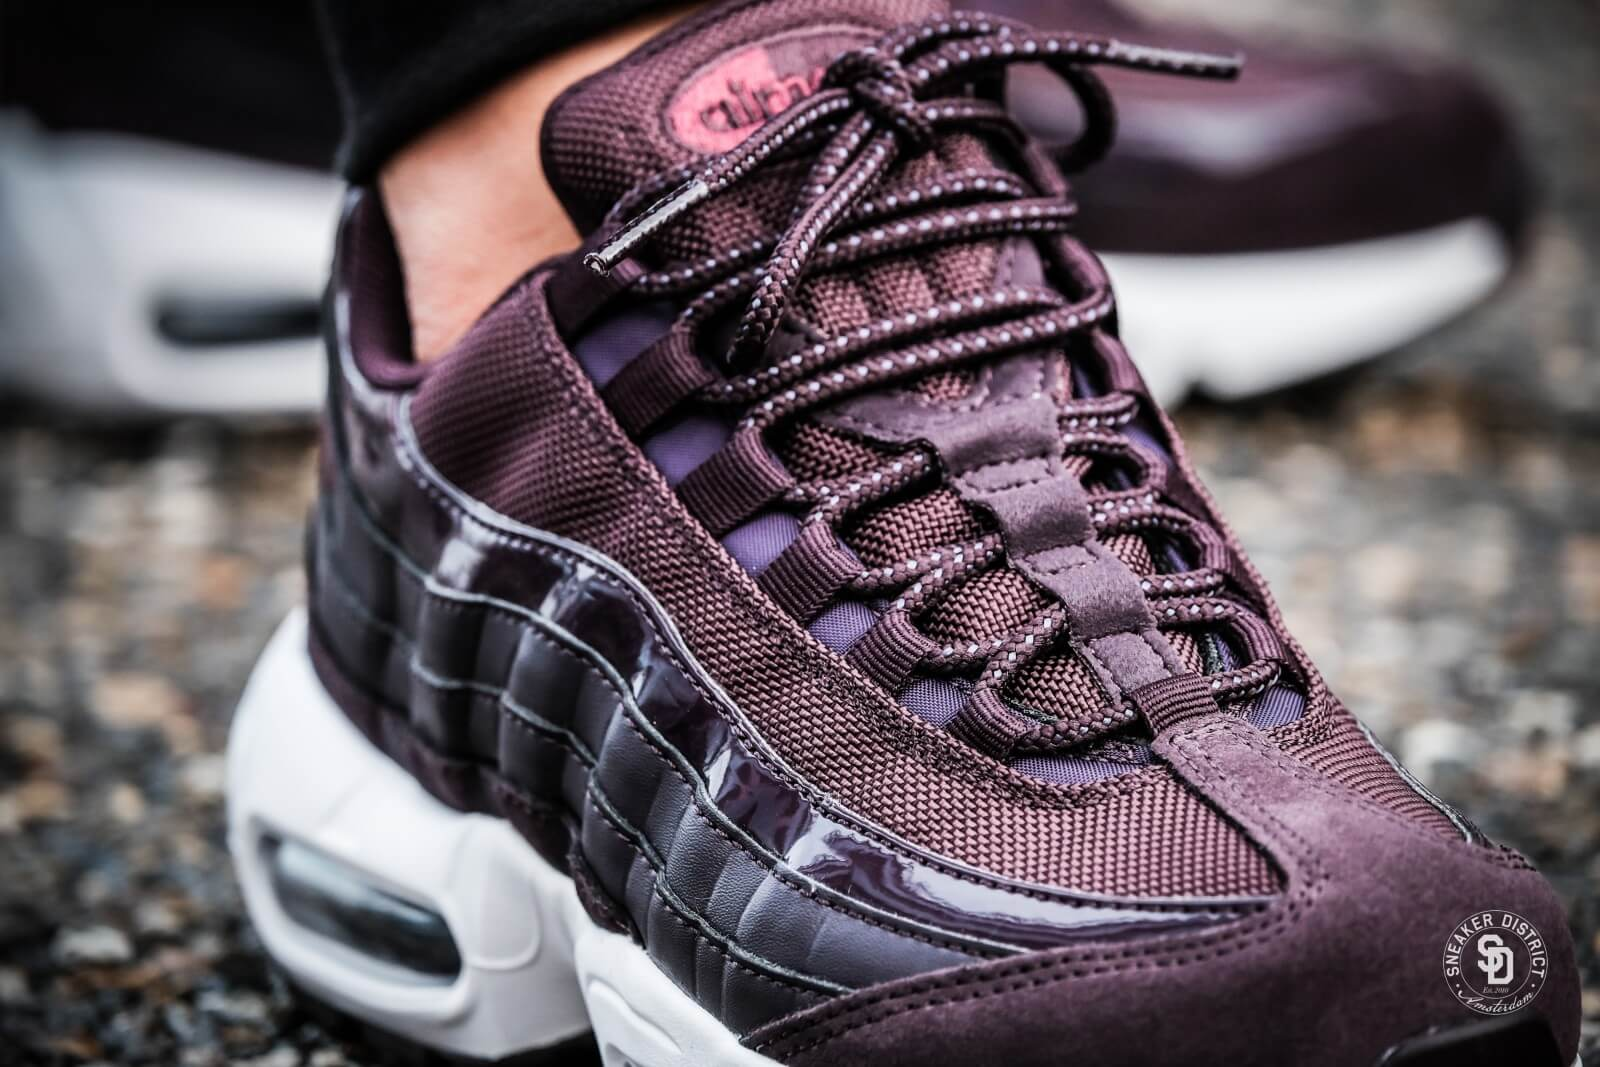 Nike Women's Air Max 95 Port Wine/Bordeaux-White